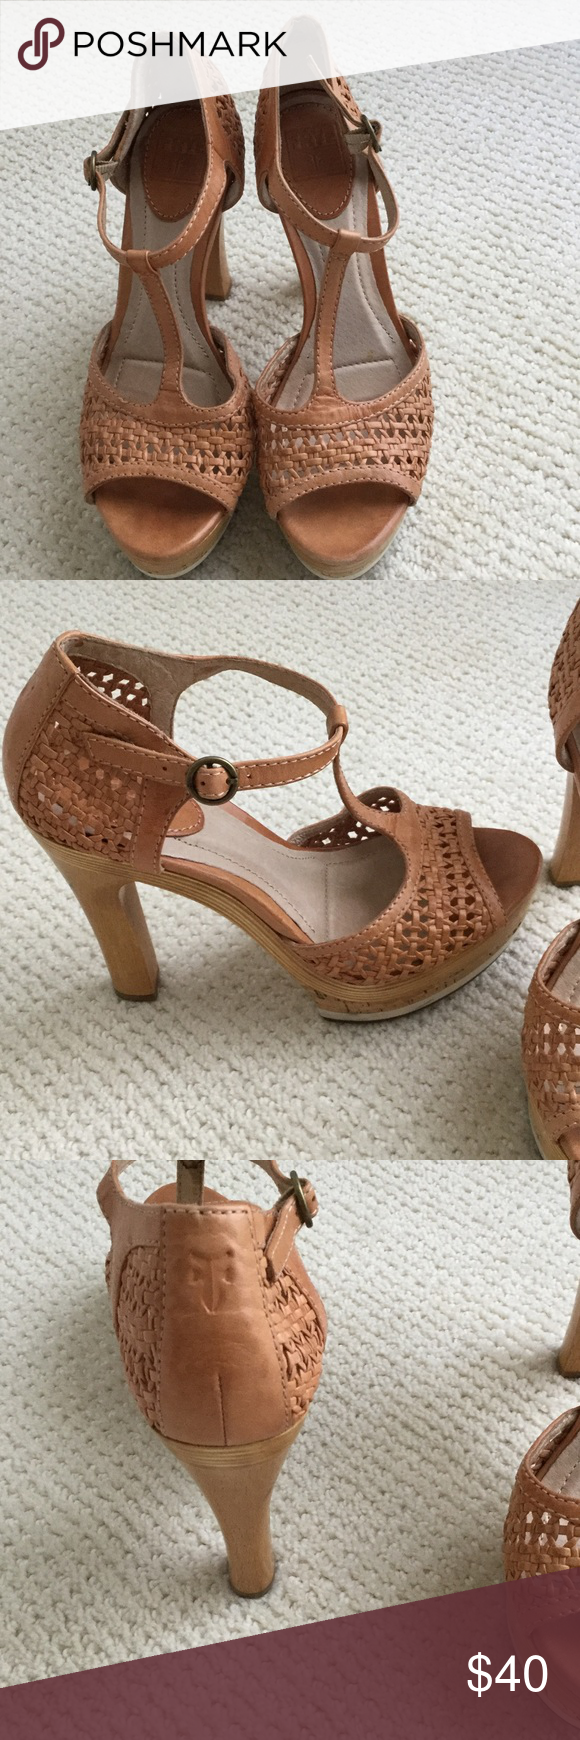 Shoes Frye platforms, mint condition worn once Frye Shoes Platforms